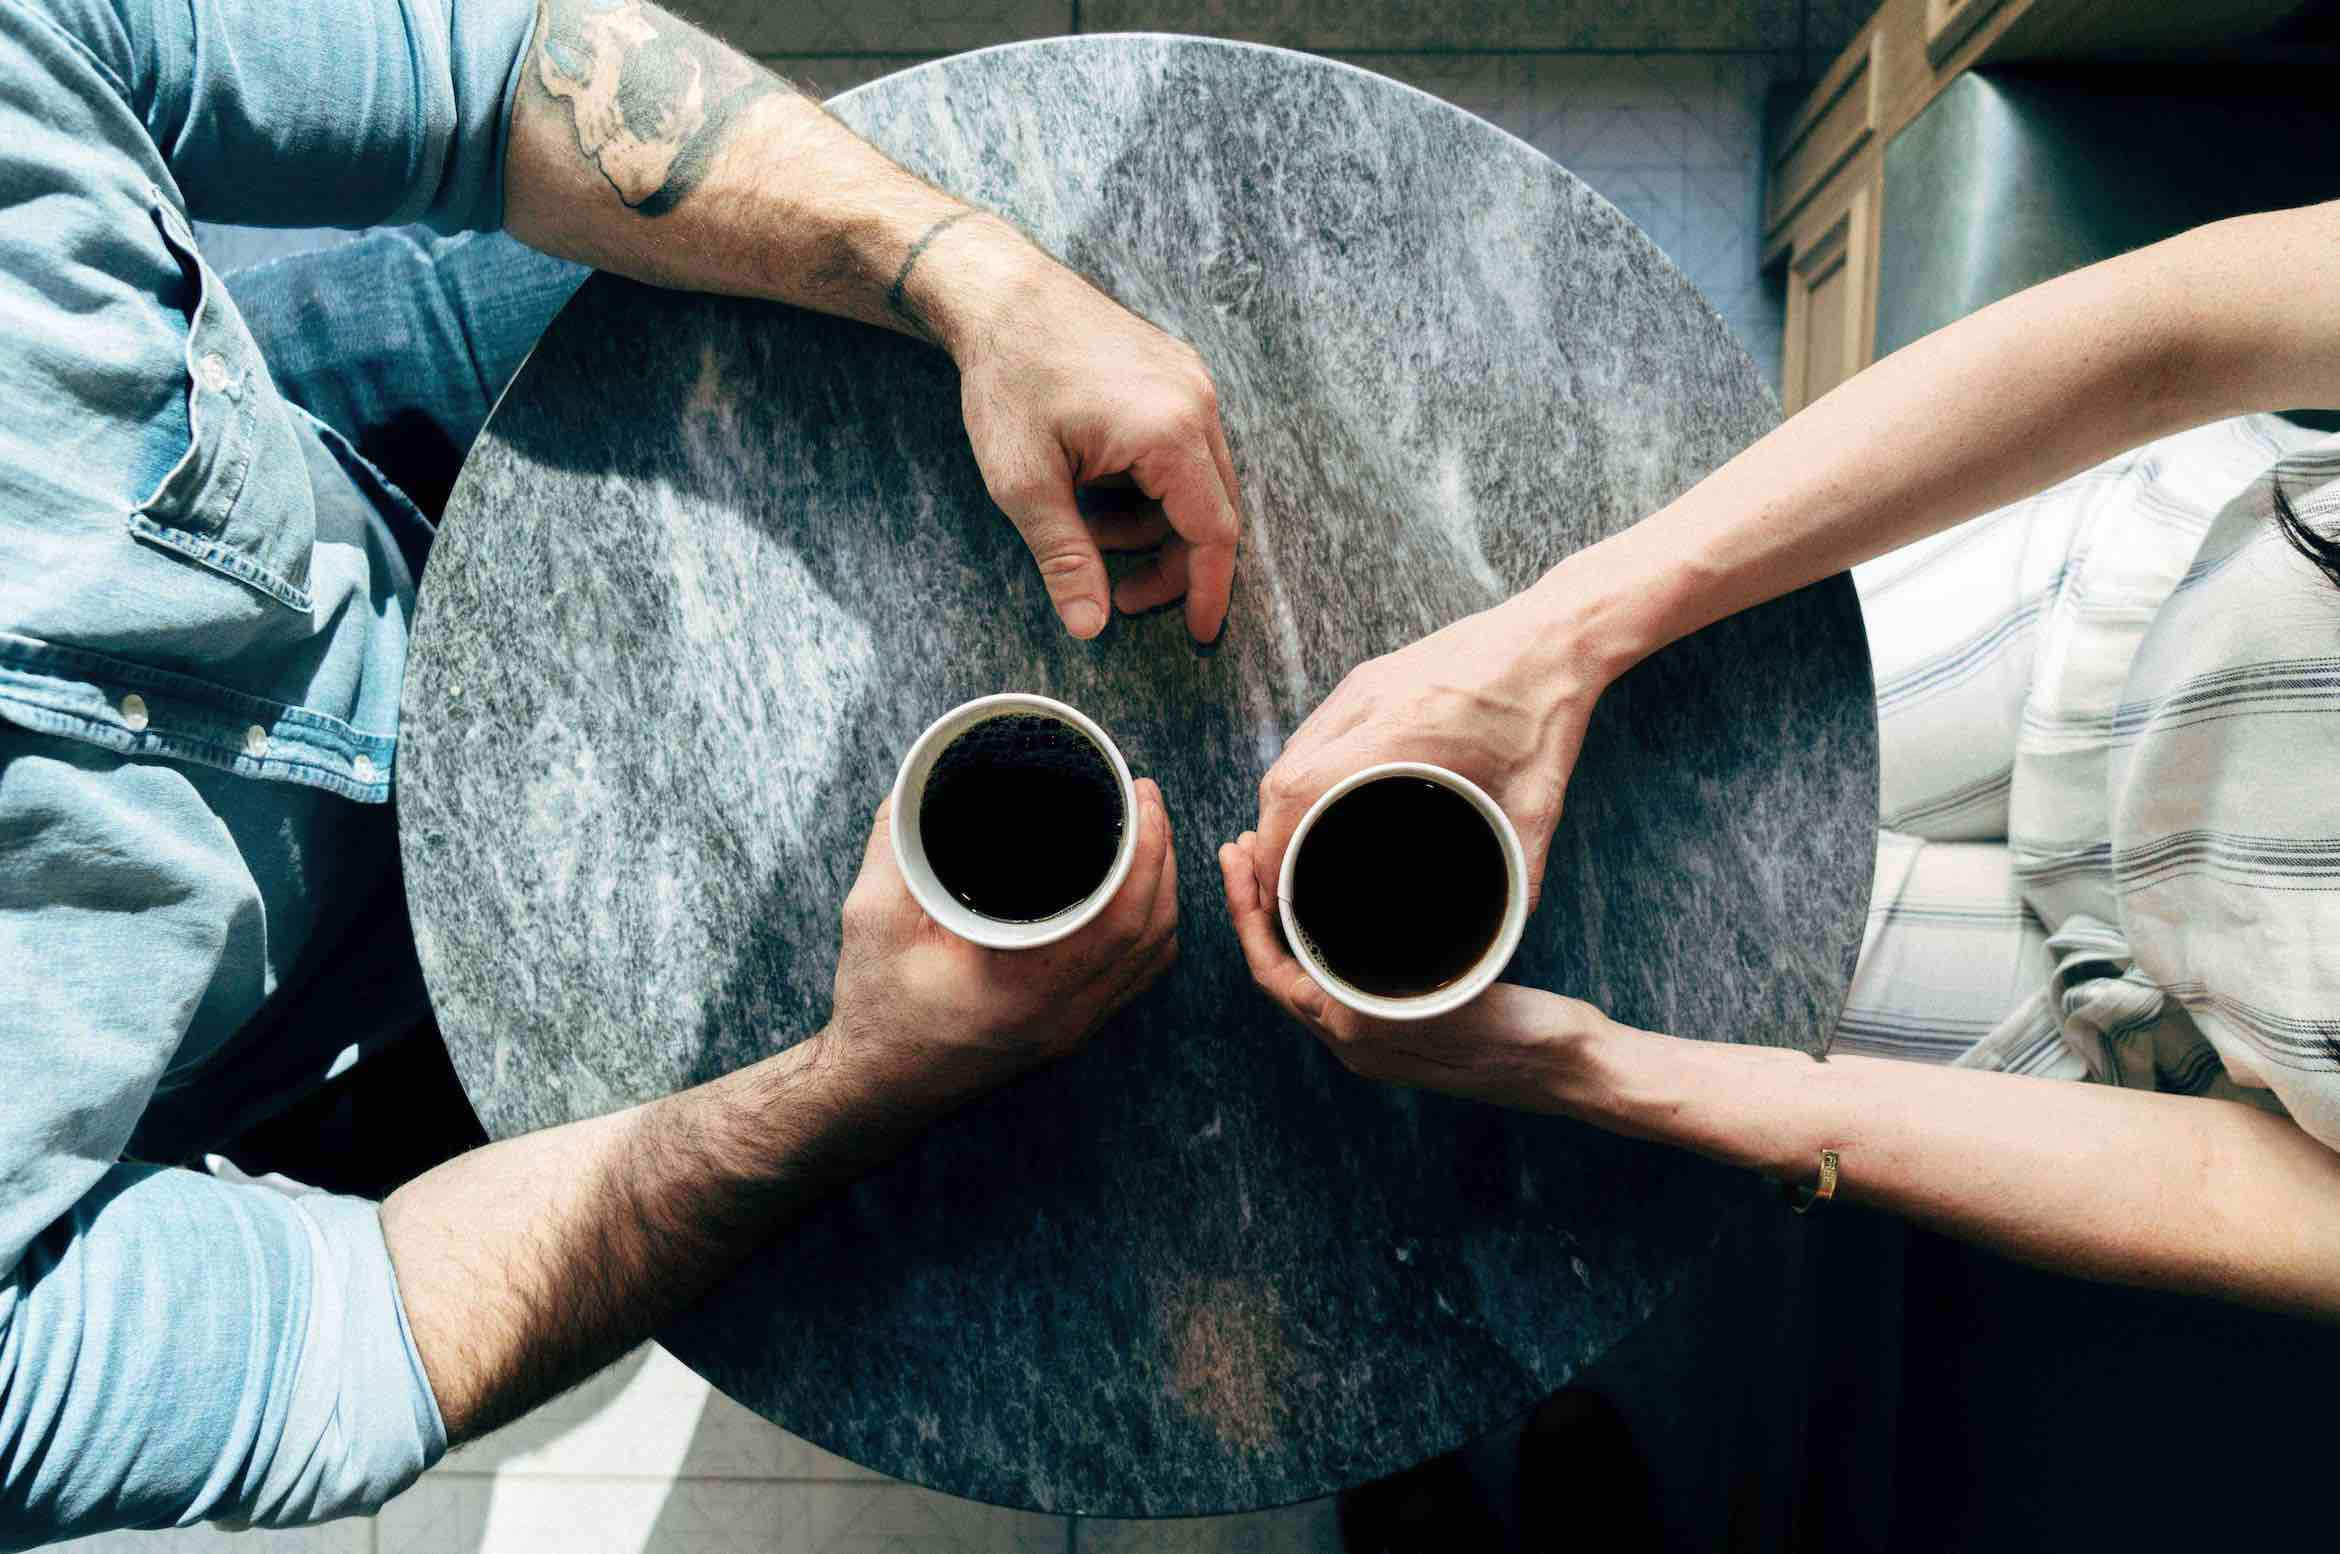 Safe Conversations Workshop for Couples presented by Chuck Starnes